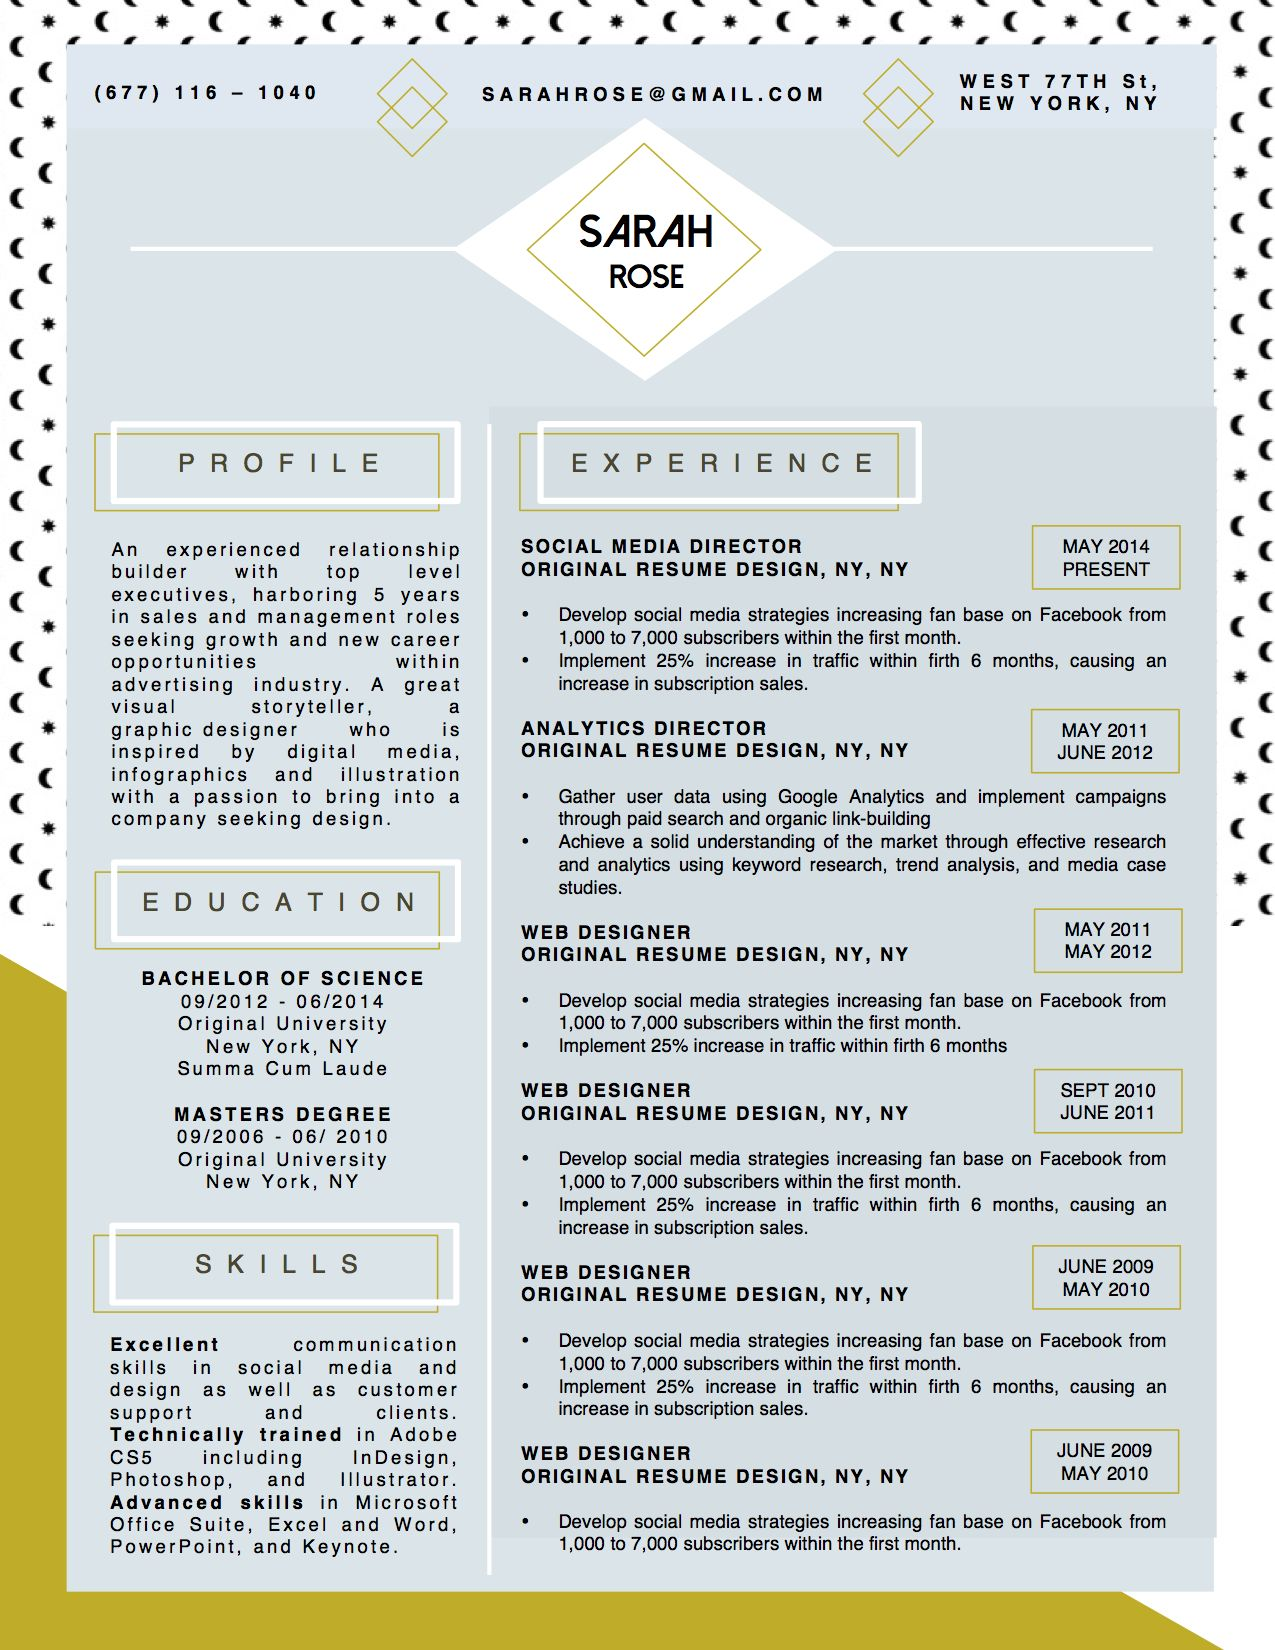 Beautiful resume cv template for Microsoft Word with matching cover ...